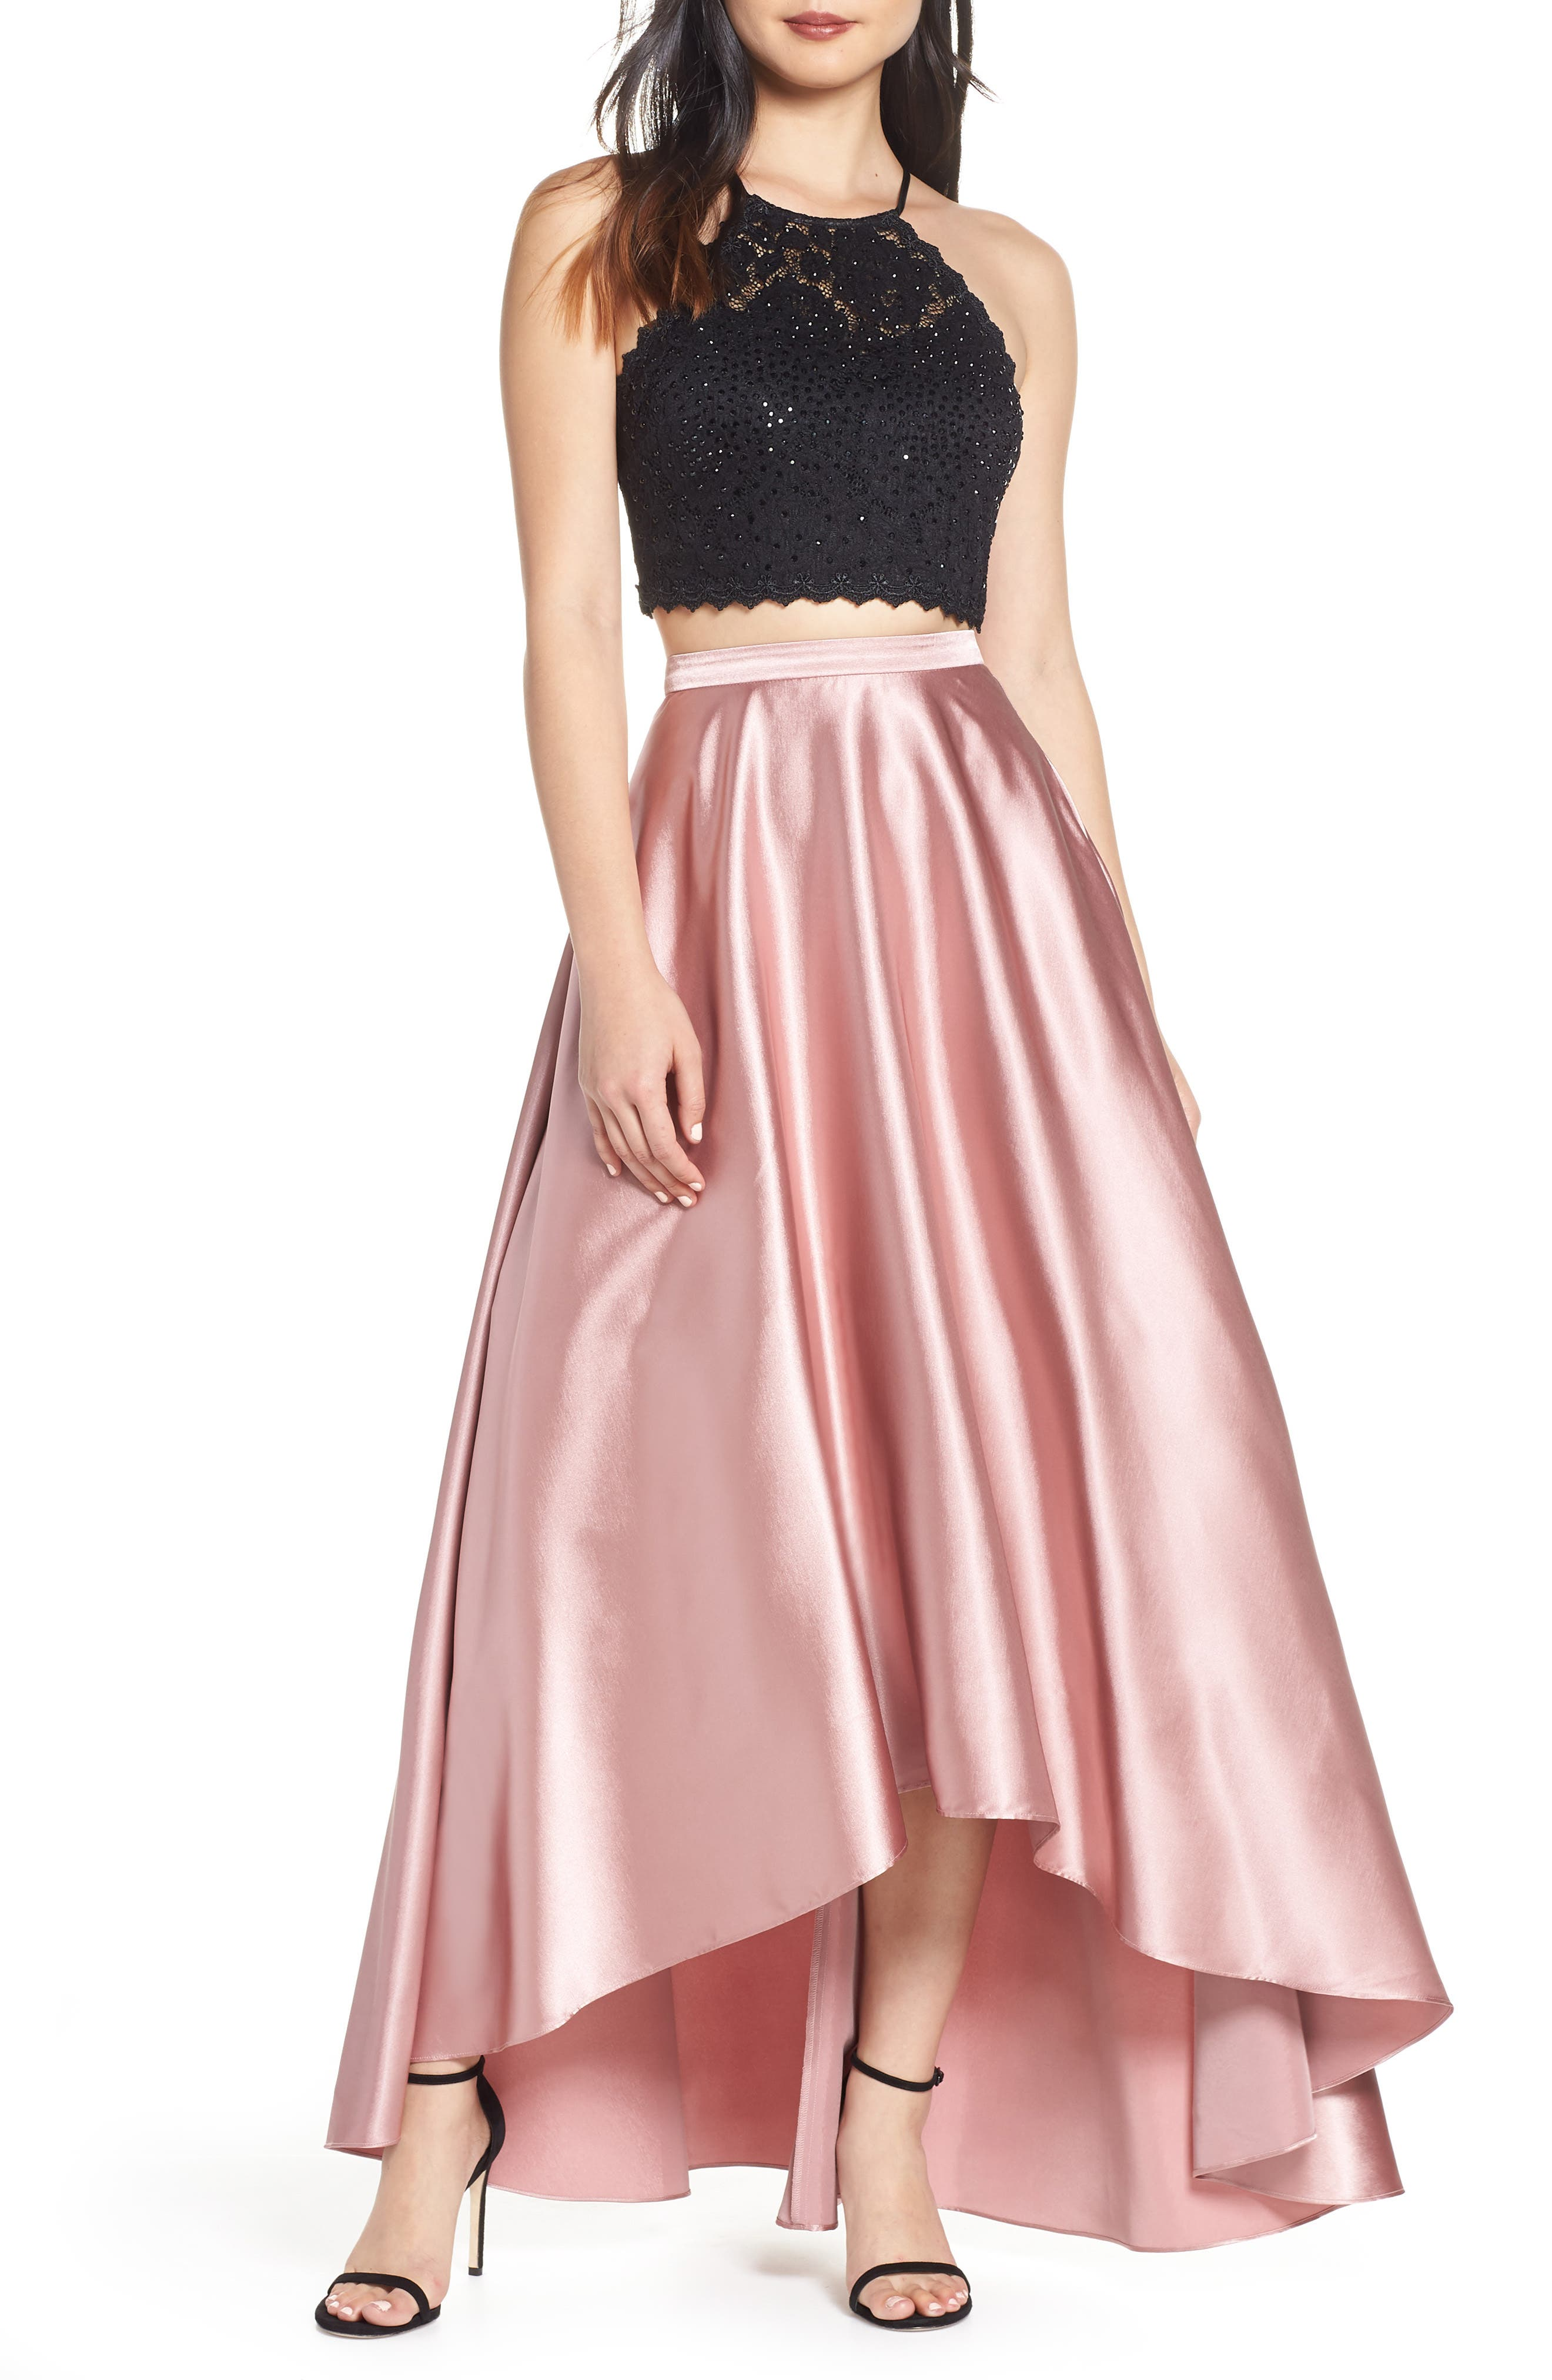 Glitter Lace & Satin High/Low Two-Piece Evening Dress, Main, color, ROSE/ BLACK